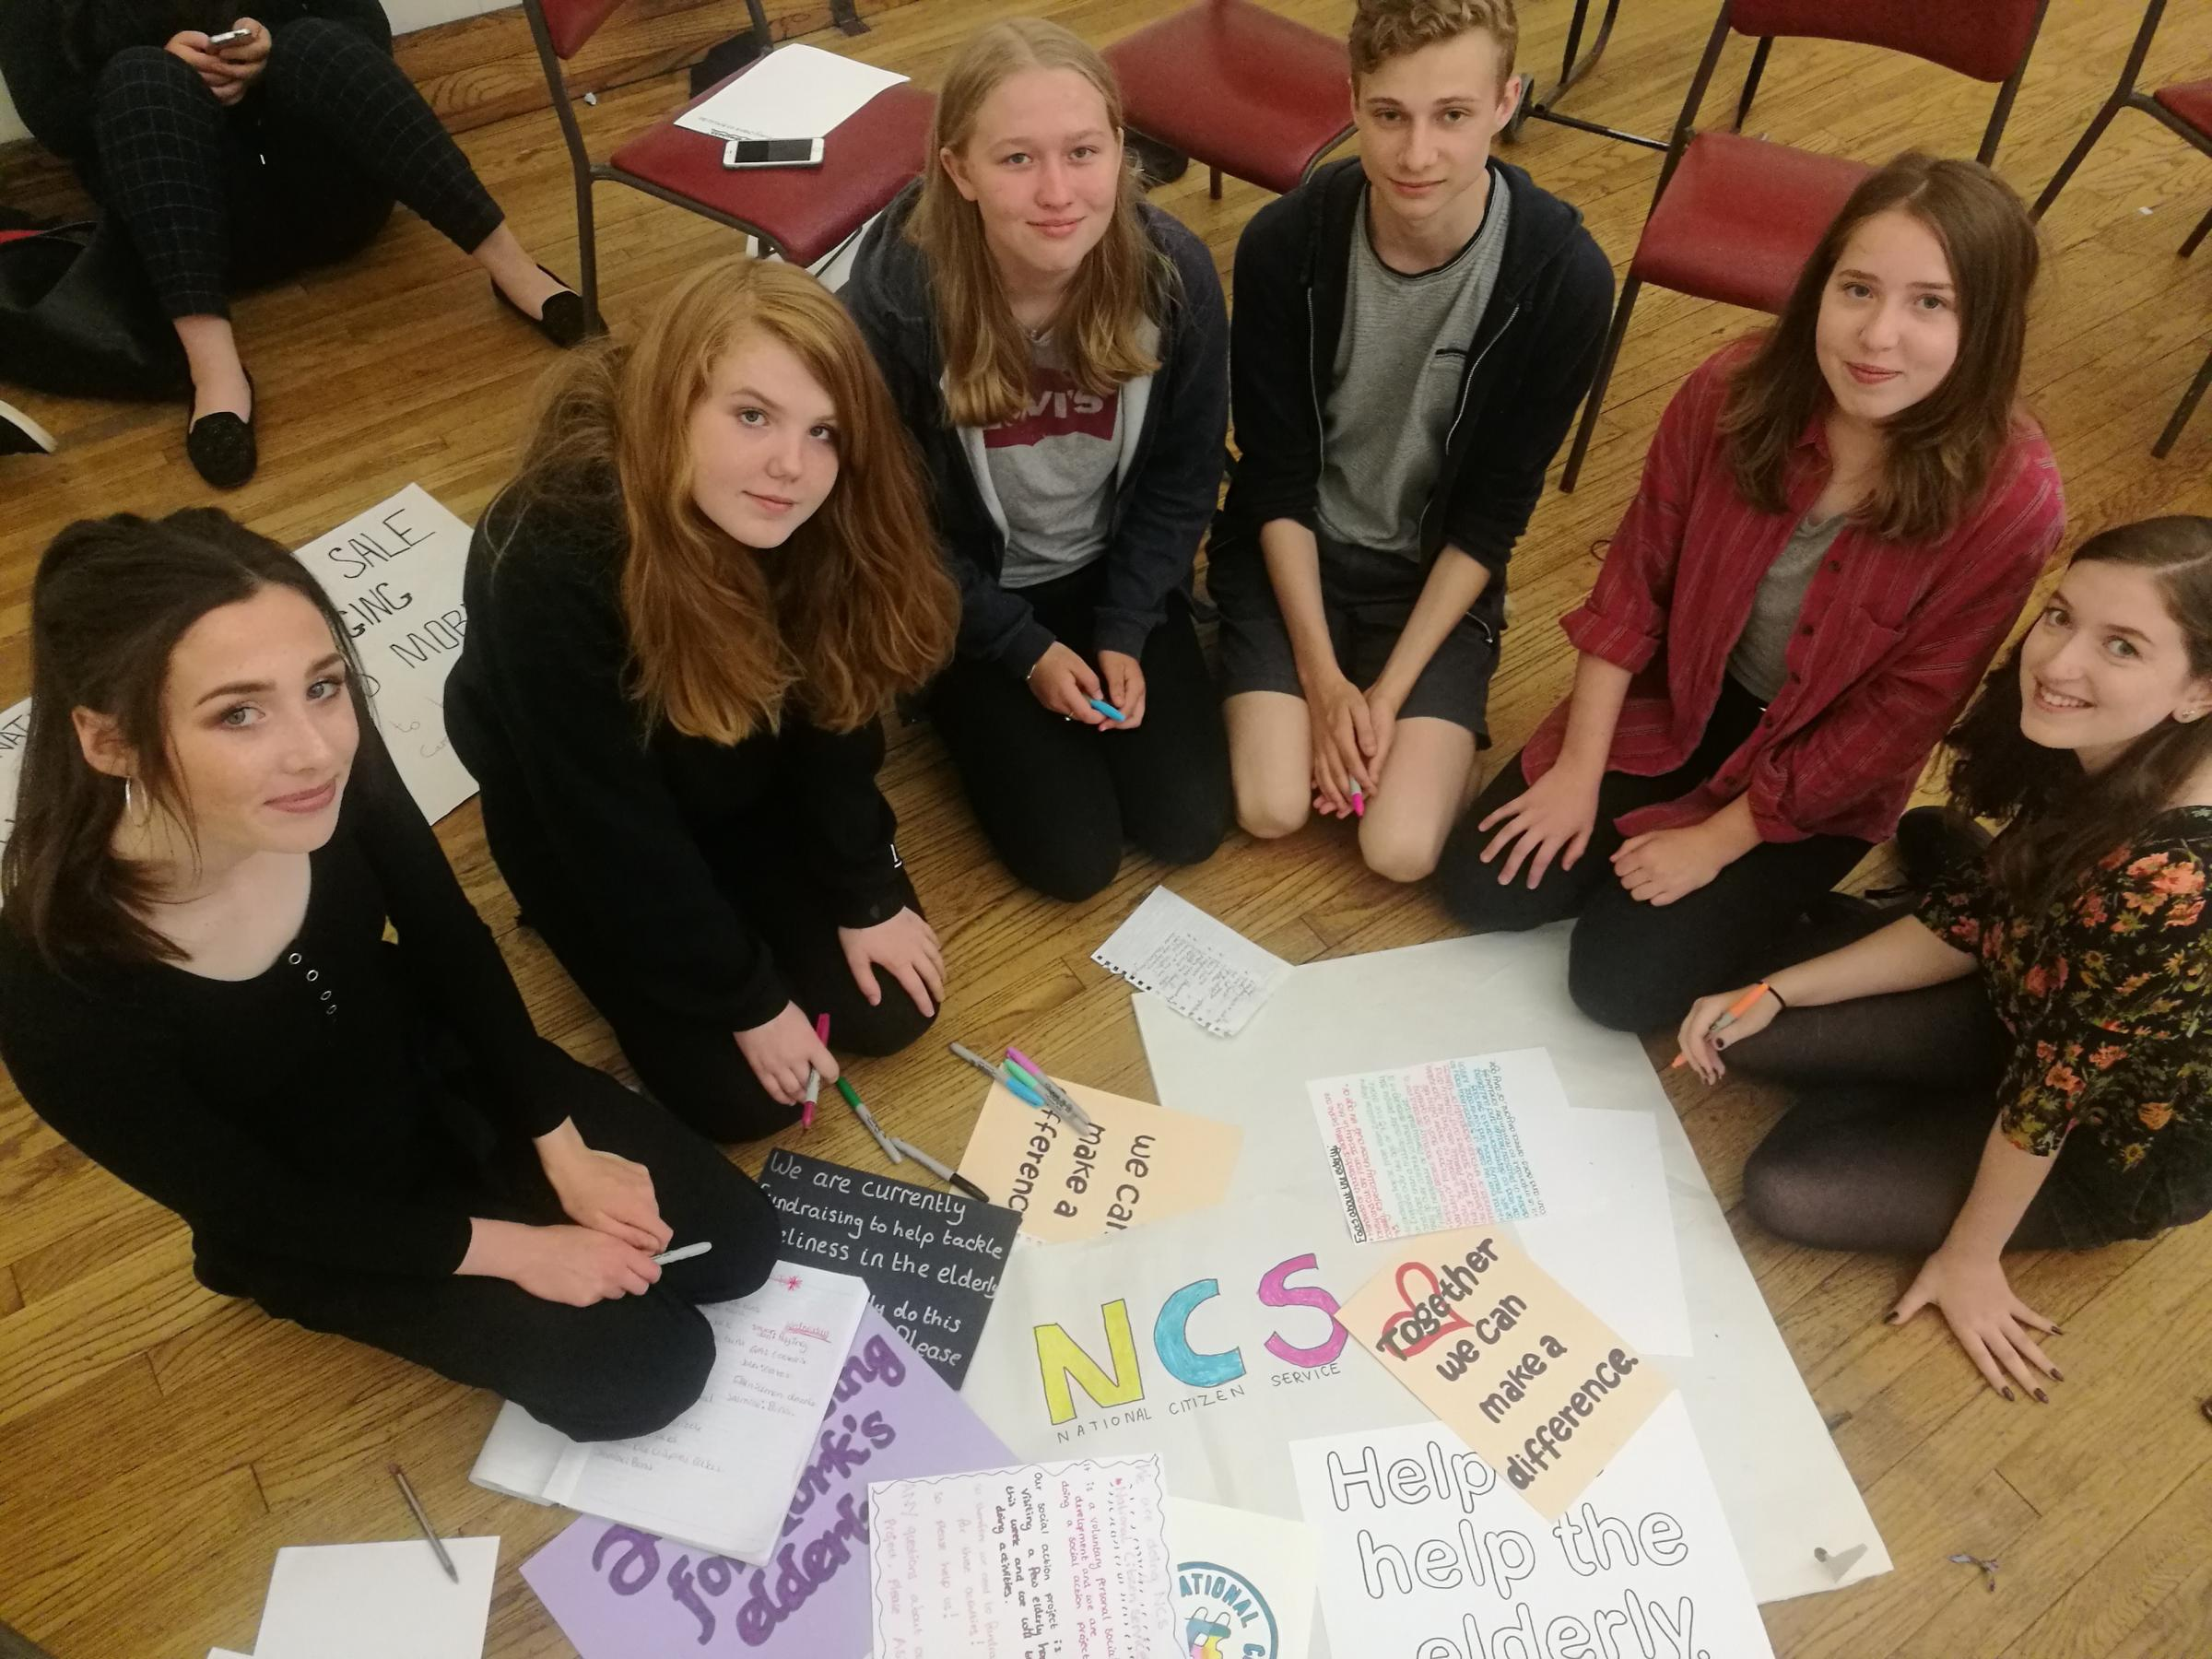 HELPING OUT: York teenagers taking part in a National Citizen Scheme social action project